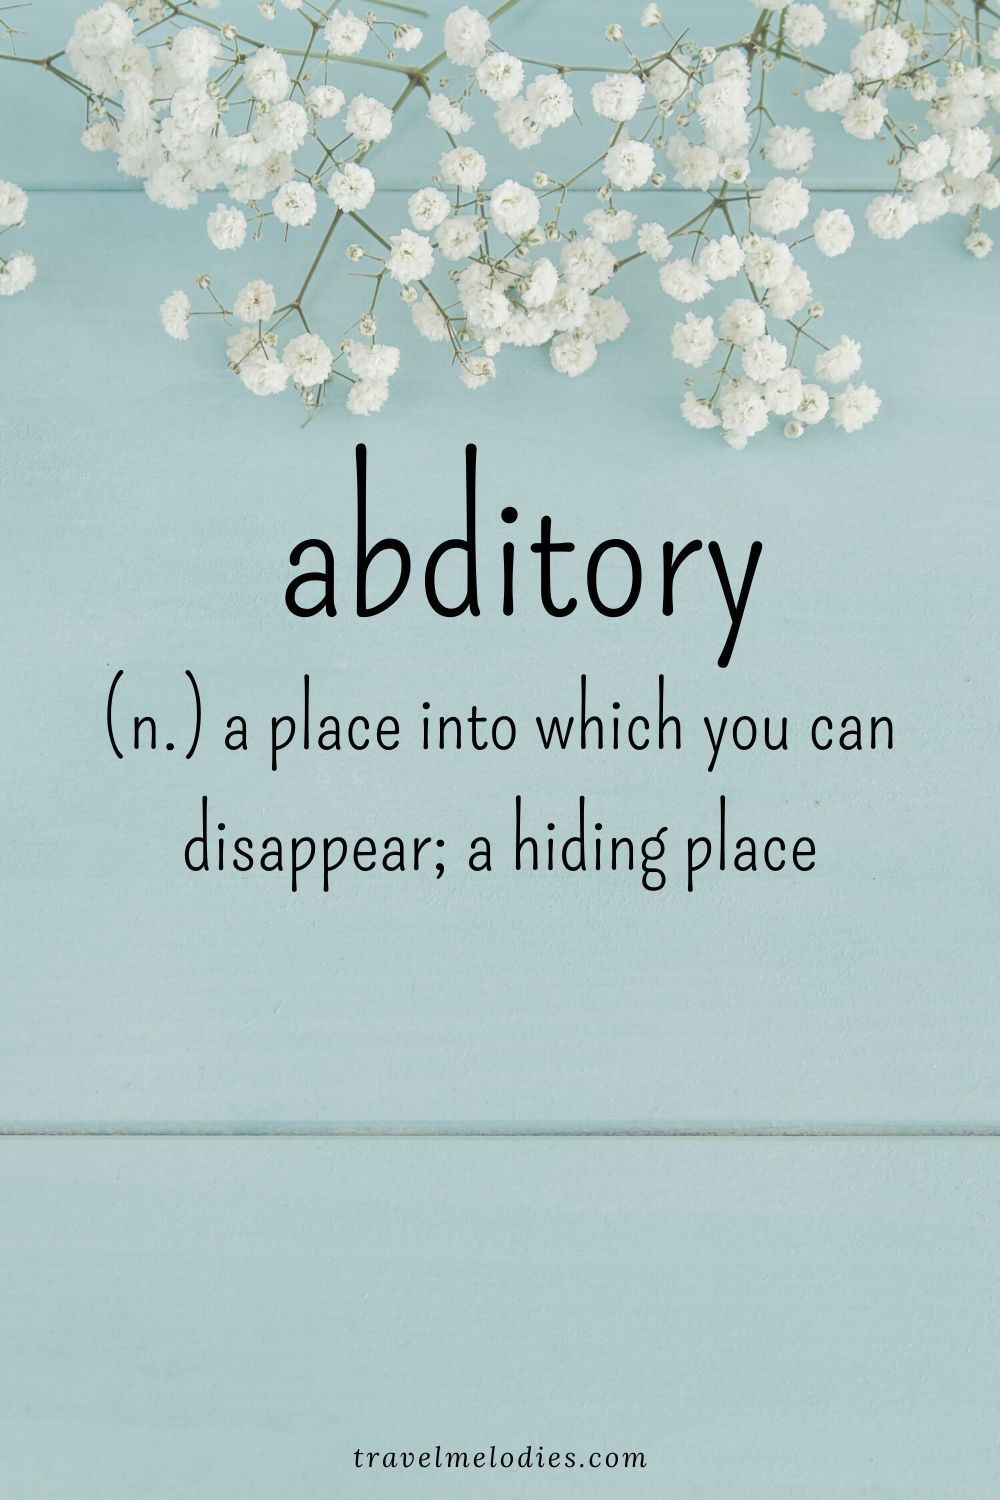 Beautiful Words to Spruce Up your Vocabulary - Travel